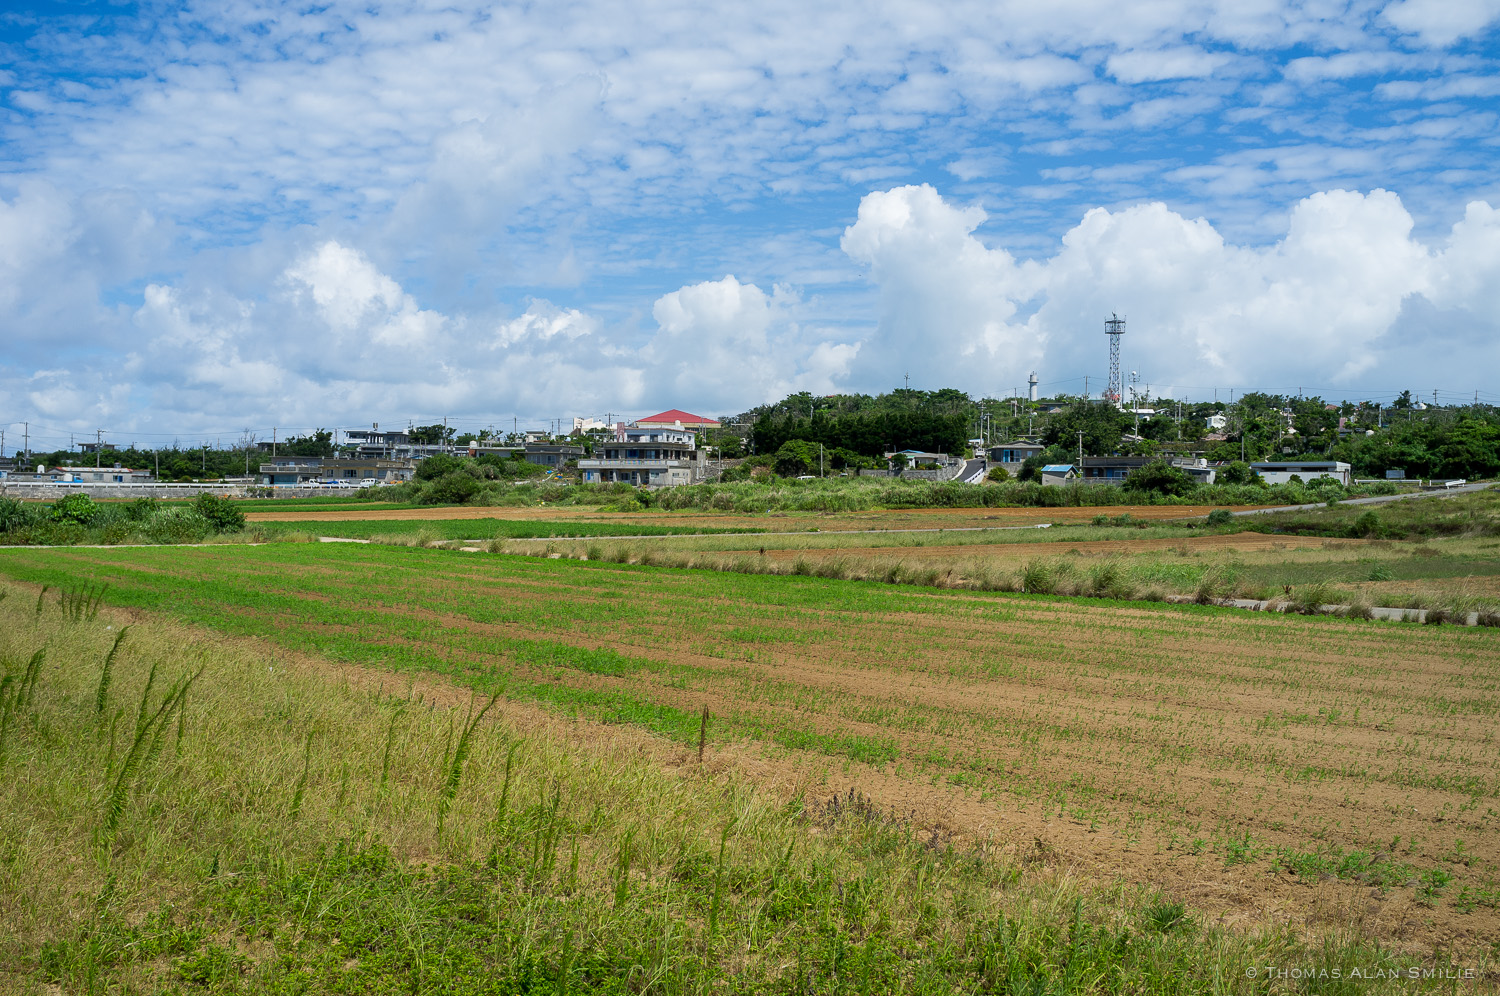 Farmland on Tsuken Island. Fuji x100.